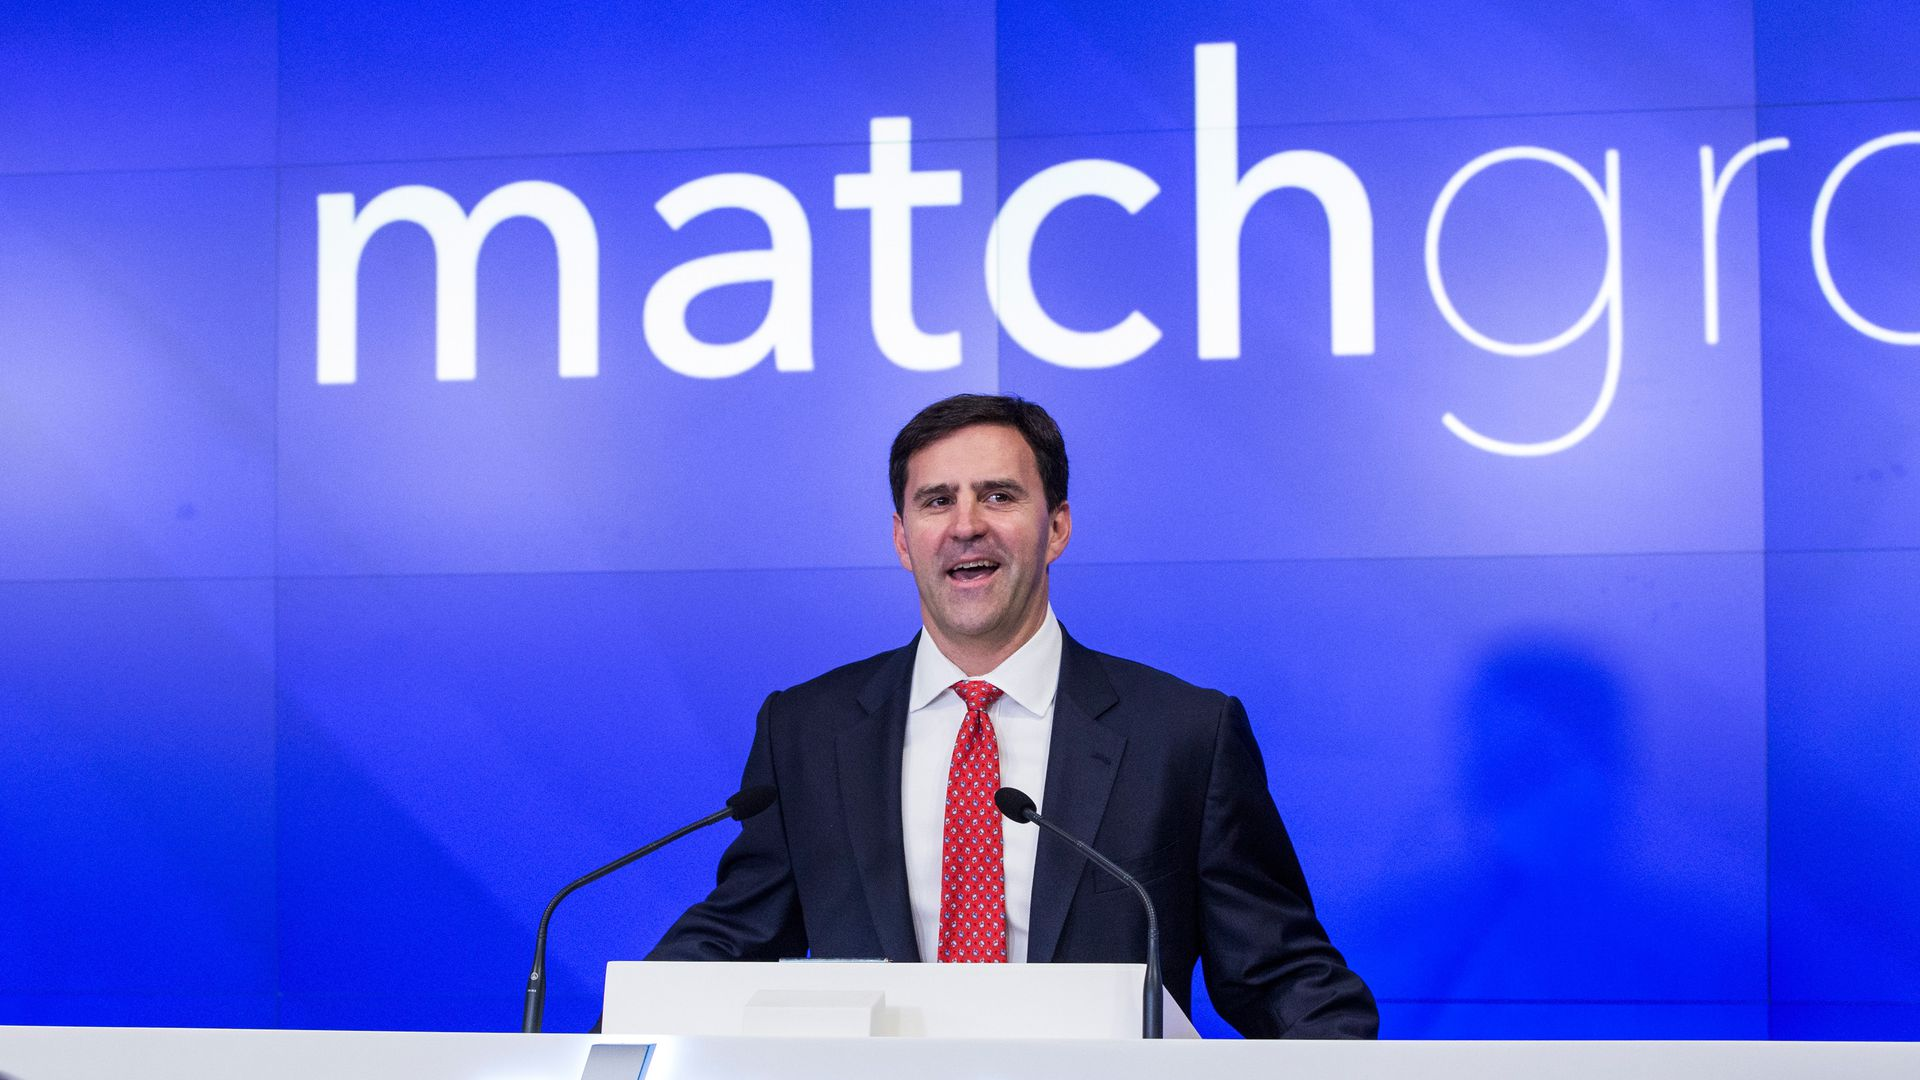 Match.com Chairman Greg Blatt